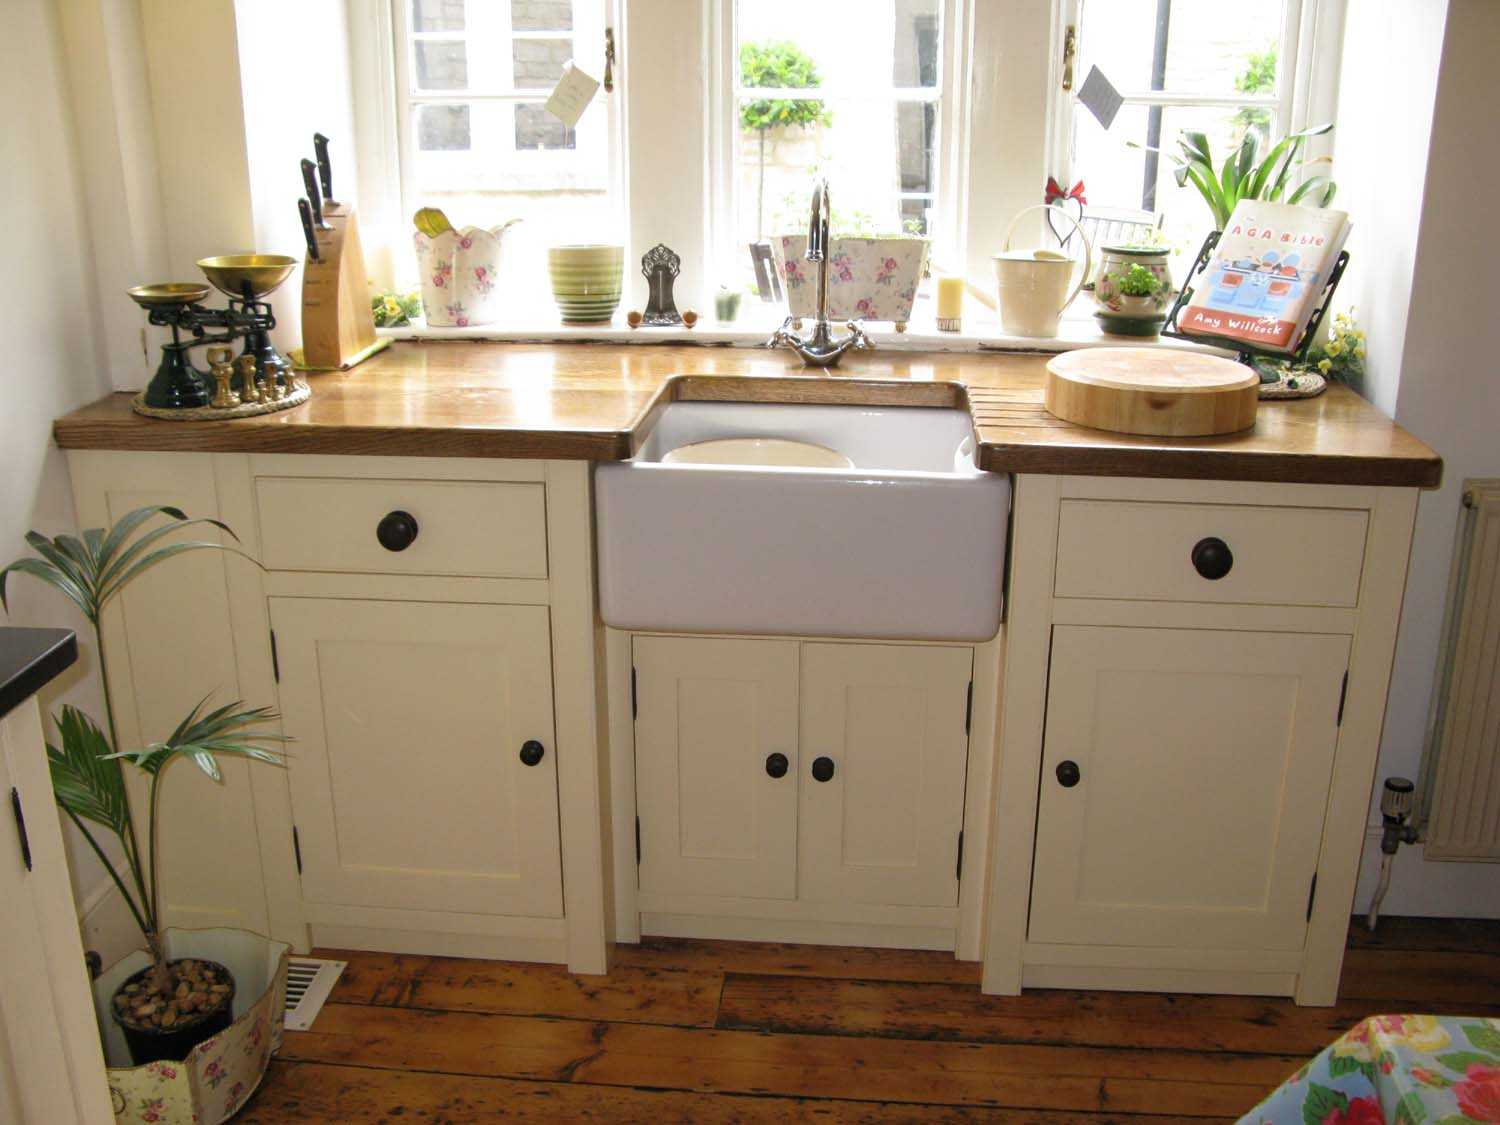 free standing kitchen cabinets with countertops lovely best kitchen cabinet trends with incredible standing sink images WBHWXYA